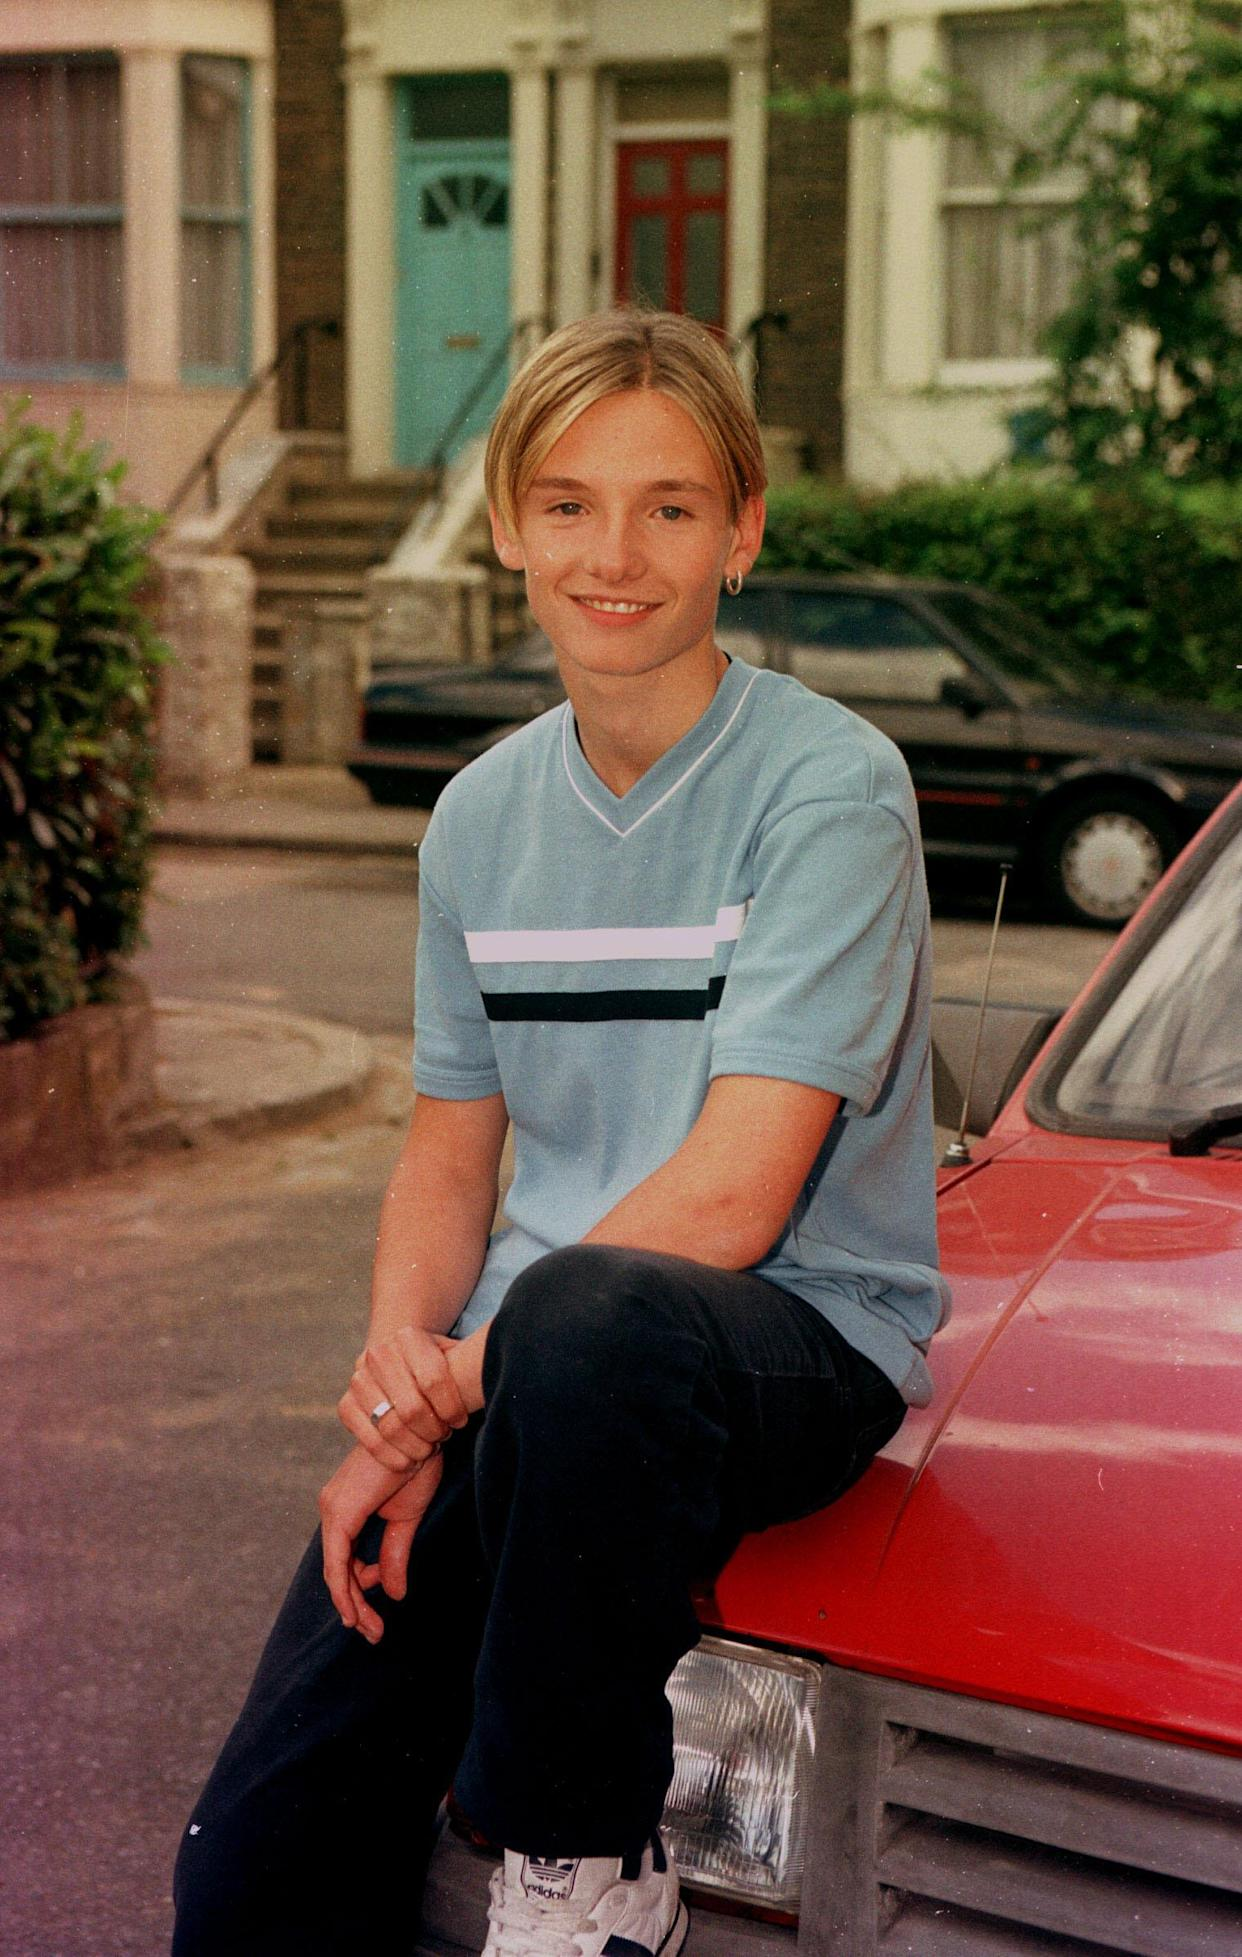 Jack Ryder joined EastEnders at the age of 16. (Photo by Ben Curtis - PA Images/PA Images via Getty Images)